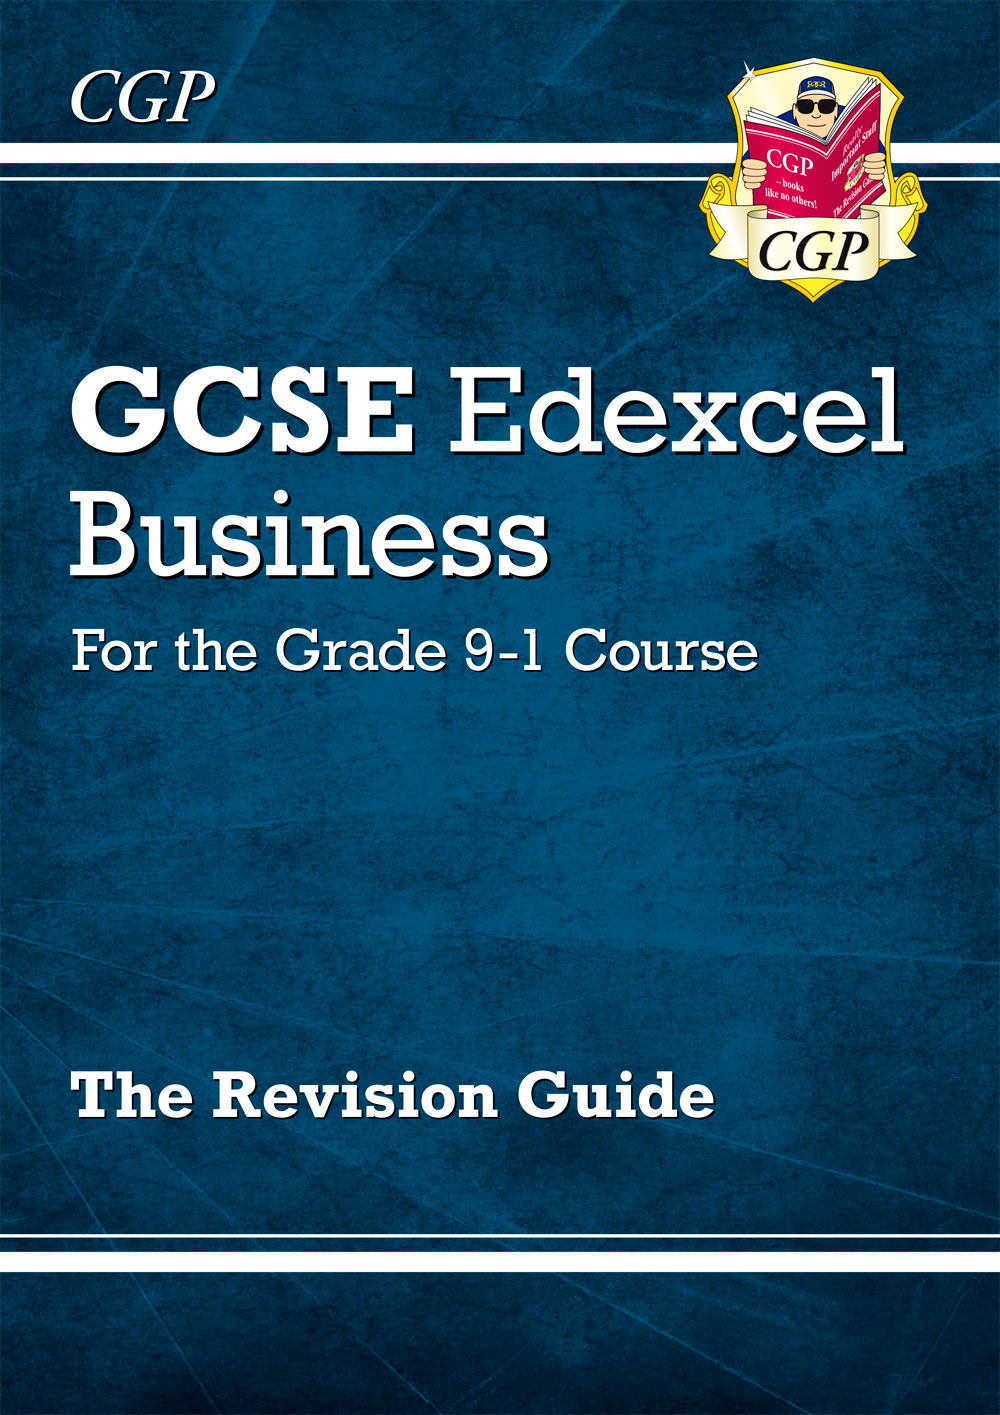 BUER41 - New GCSE Business Edexcel Revision Guide - for the Grade 9-1 Course